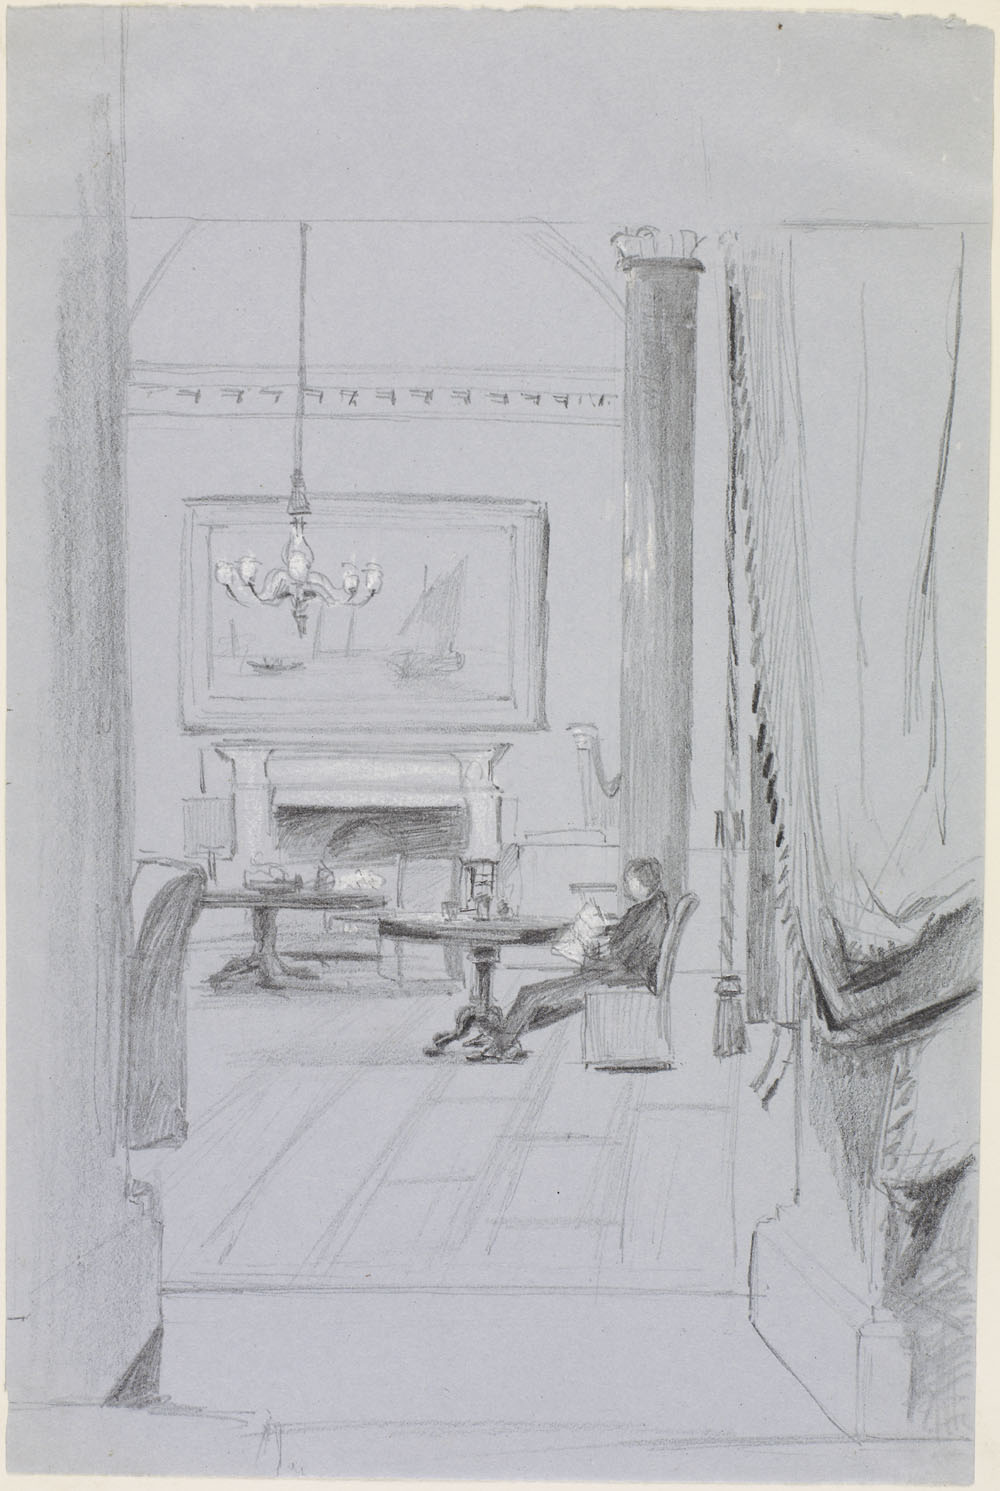 [Interior View - Lambton Castle] (item 1)